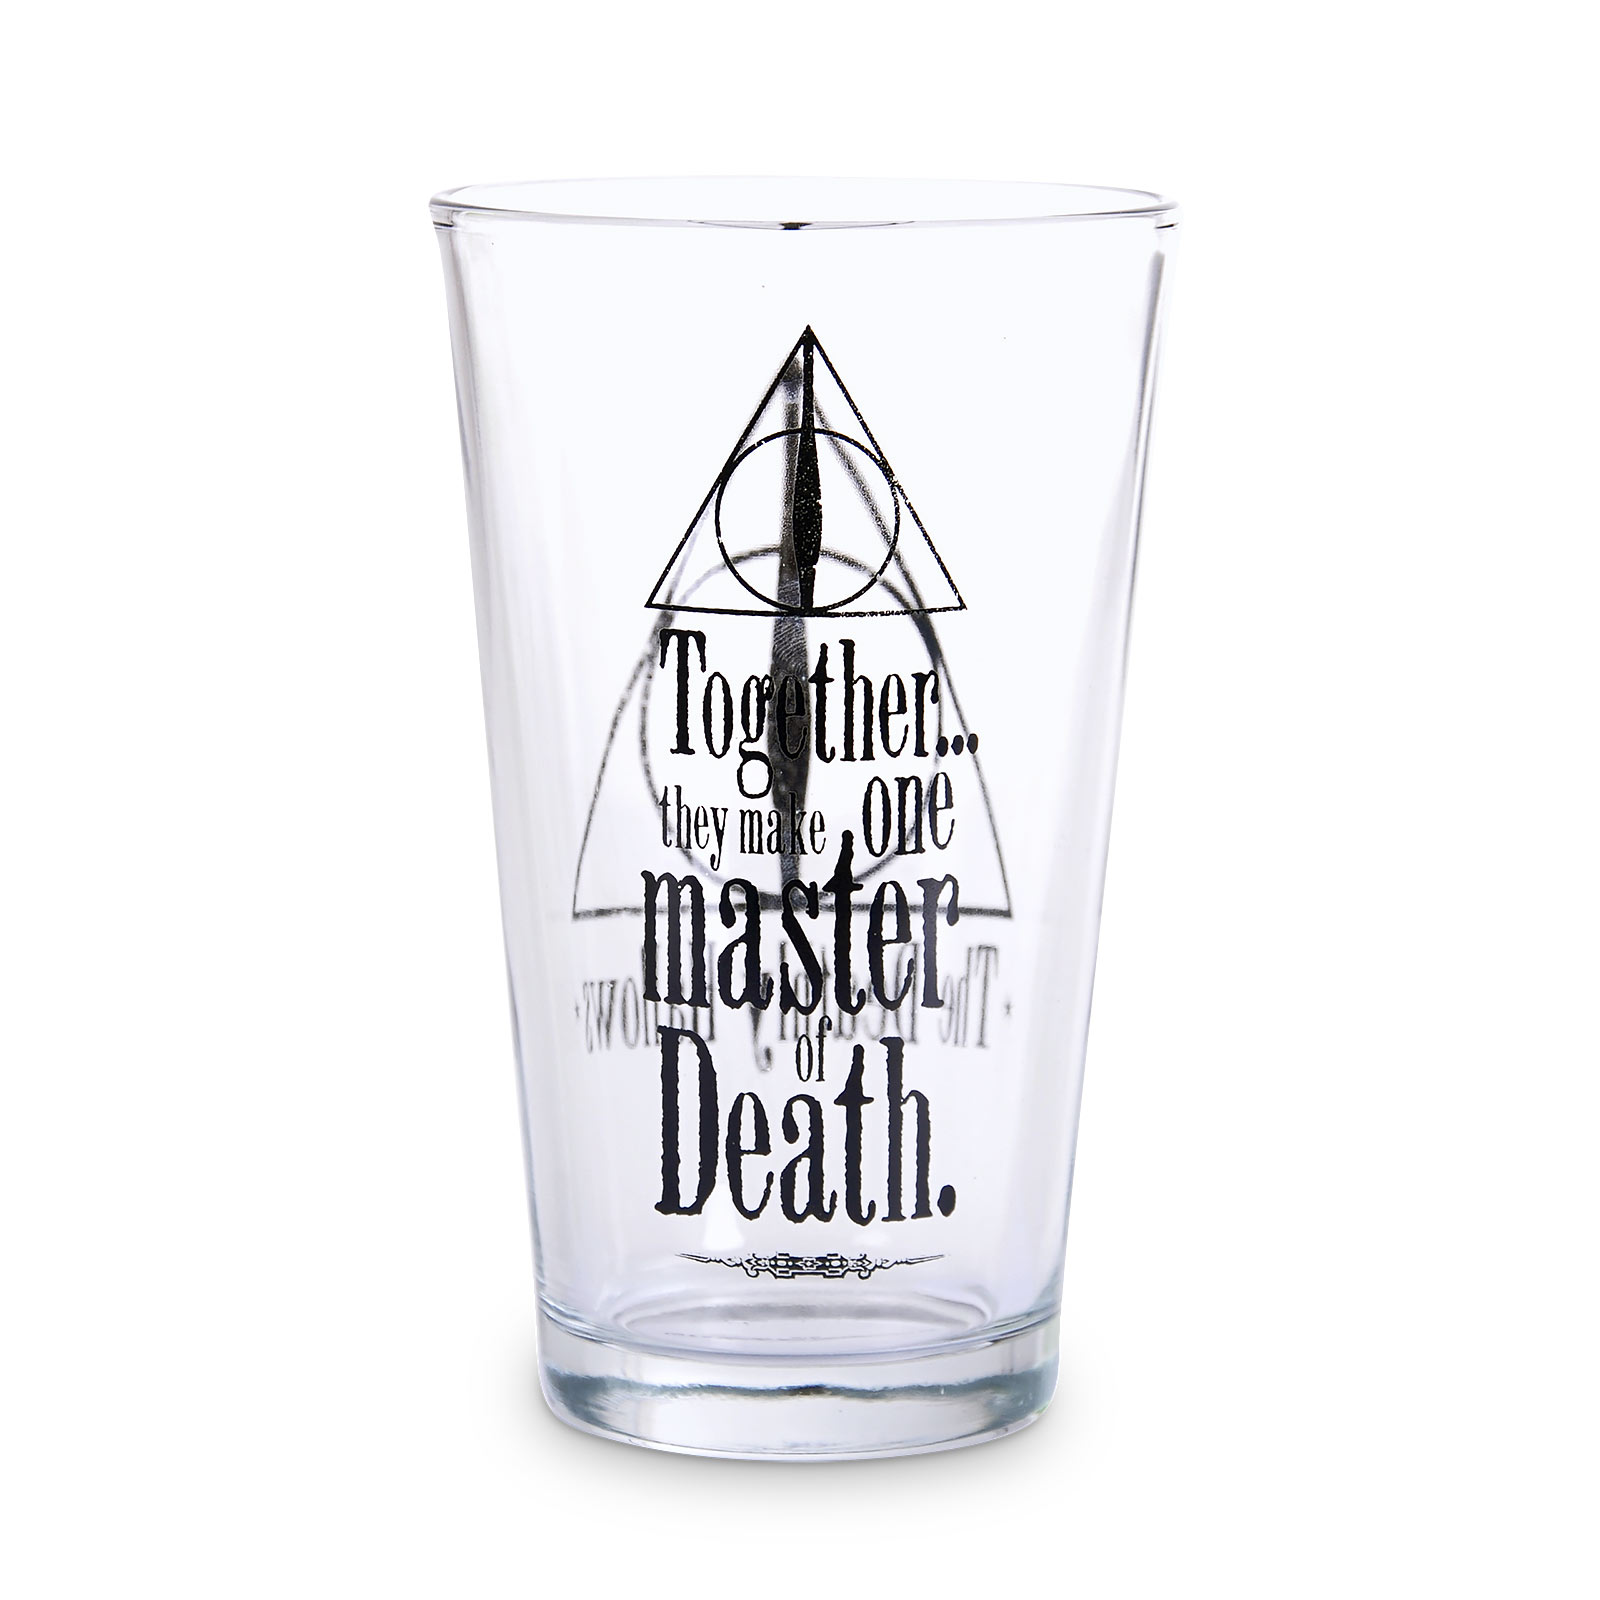 Harry Potter - Deathly Hallows Glas